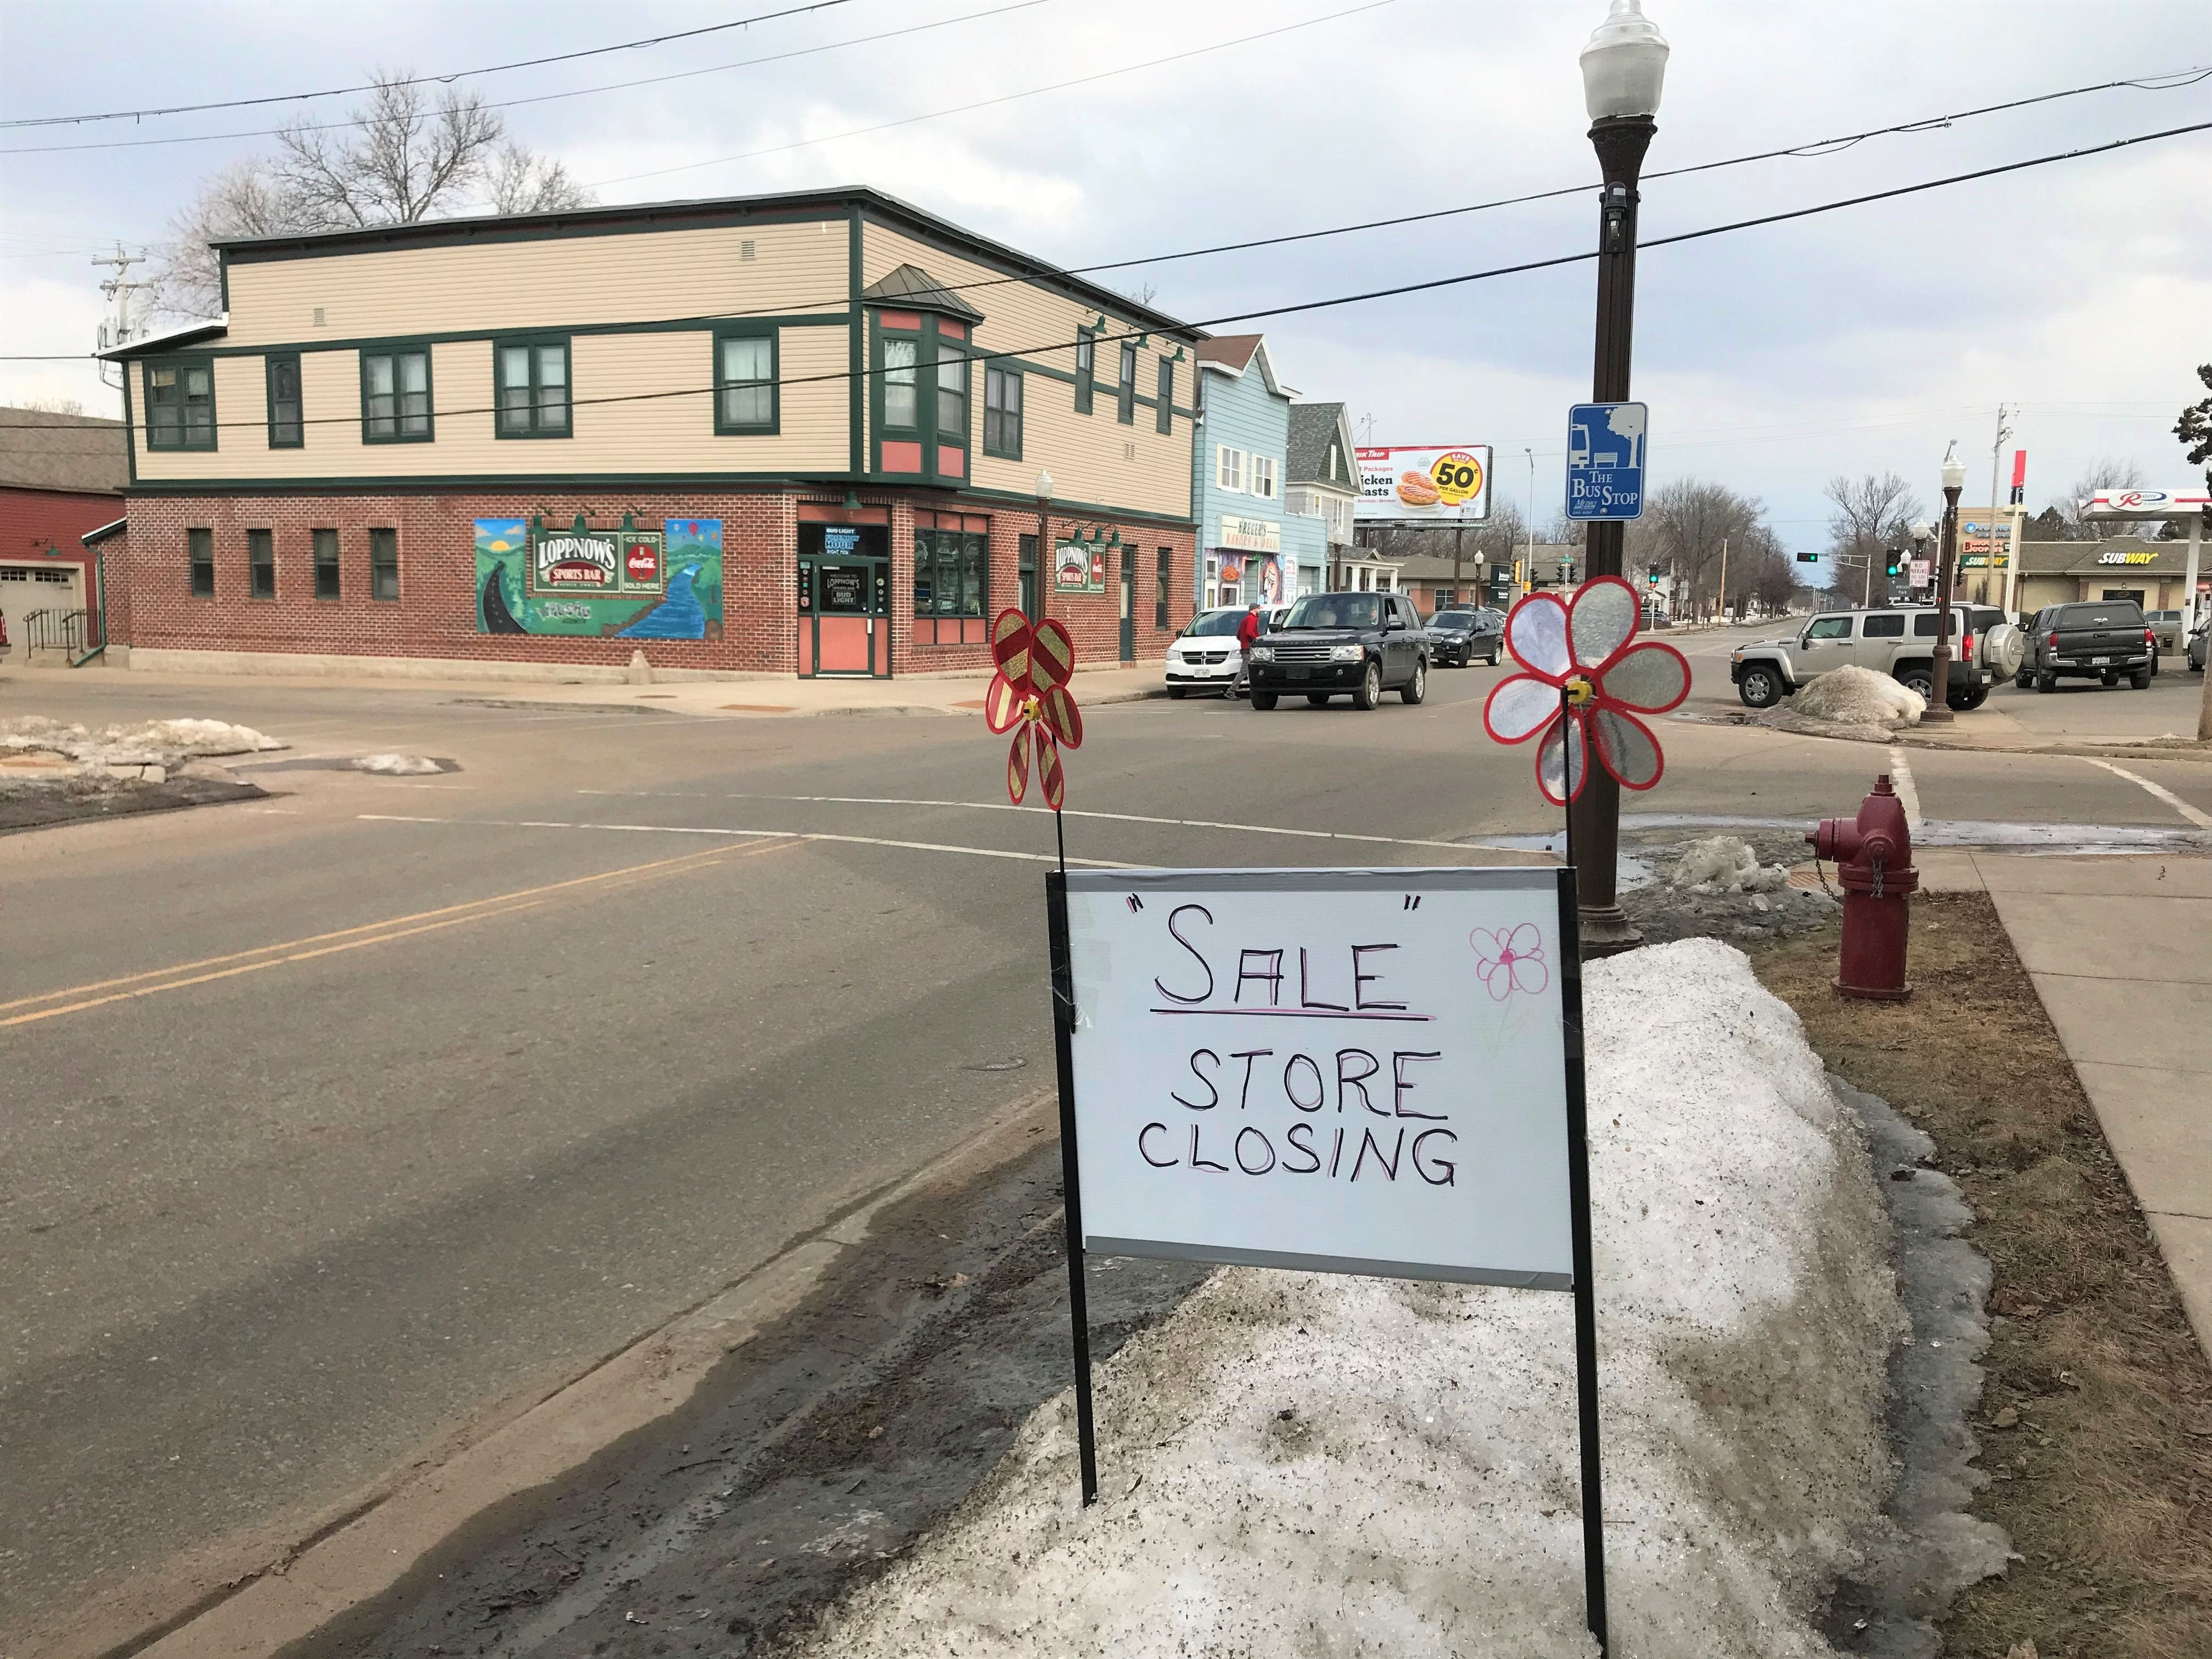 With This Ring bridal shop is having multiple sales as it prepares to close for good on Sunday.